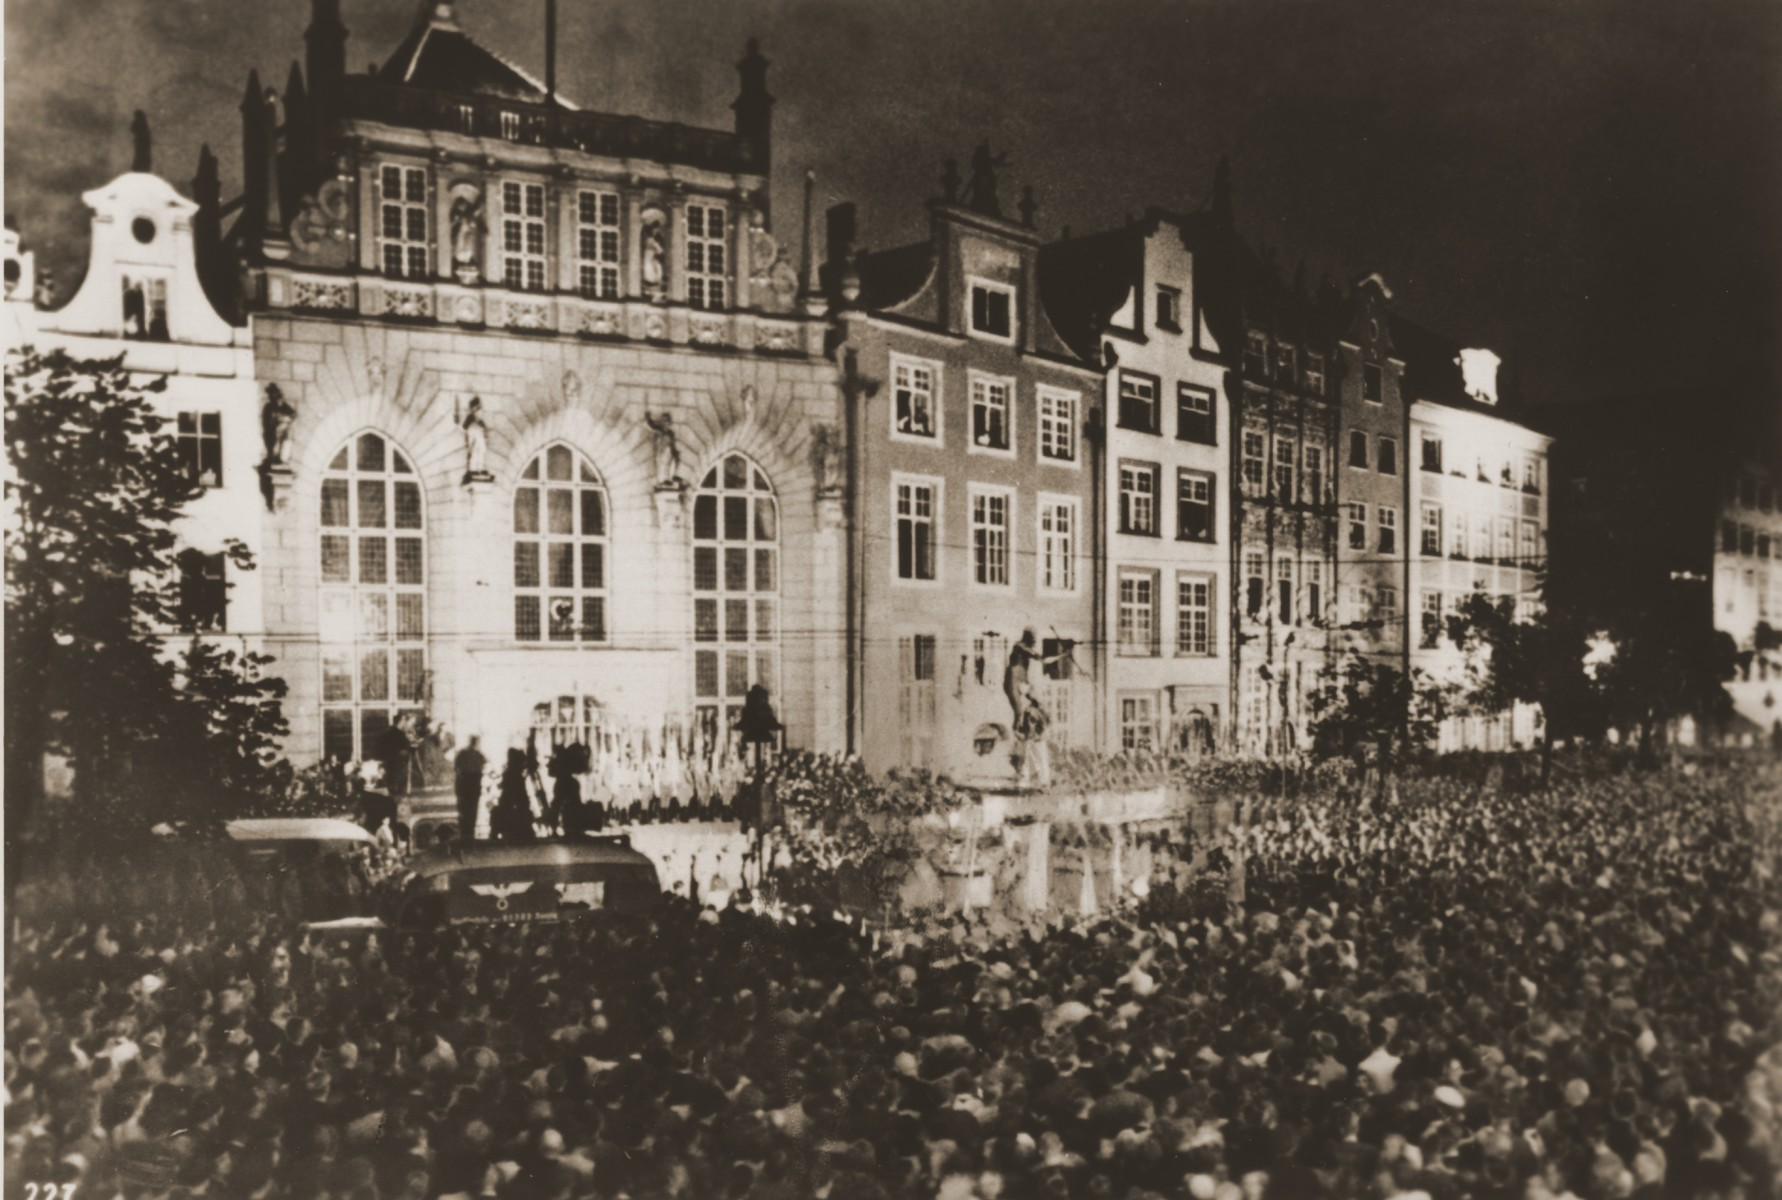 At a rally in the Langer Markt, Danzig residents call for the city's annexation by the Third Reich.